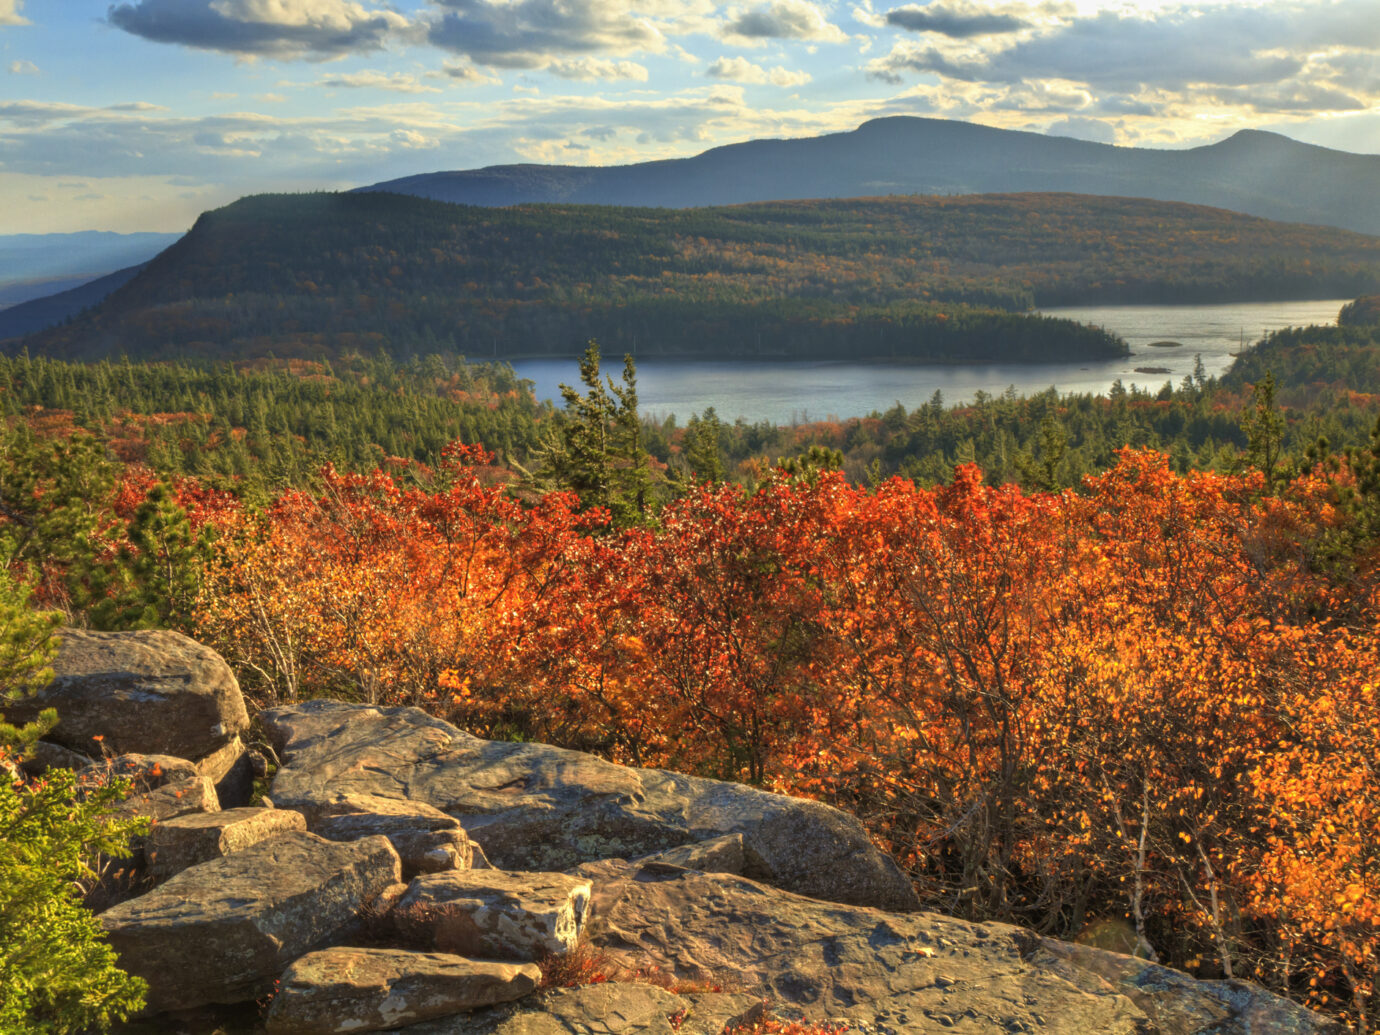 """""""Afternoon sun on sunset rock in the Autumn, overlooking North-South Lake in the Catskills Mountains of New York."""